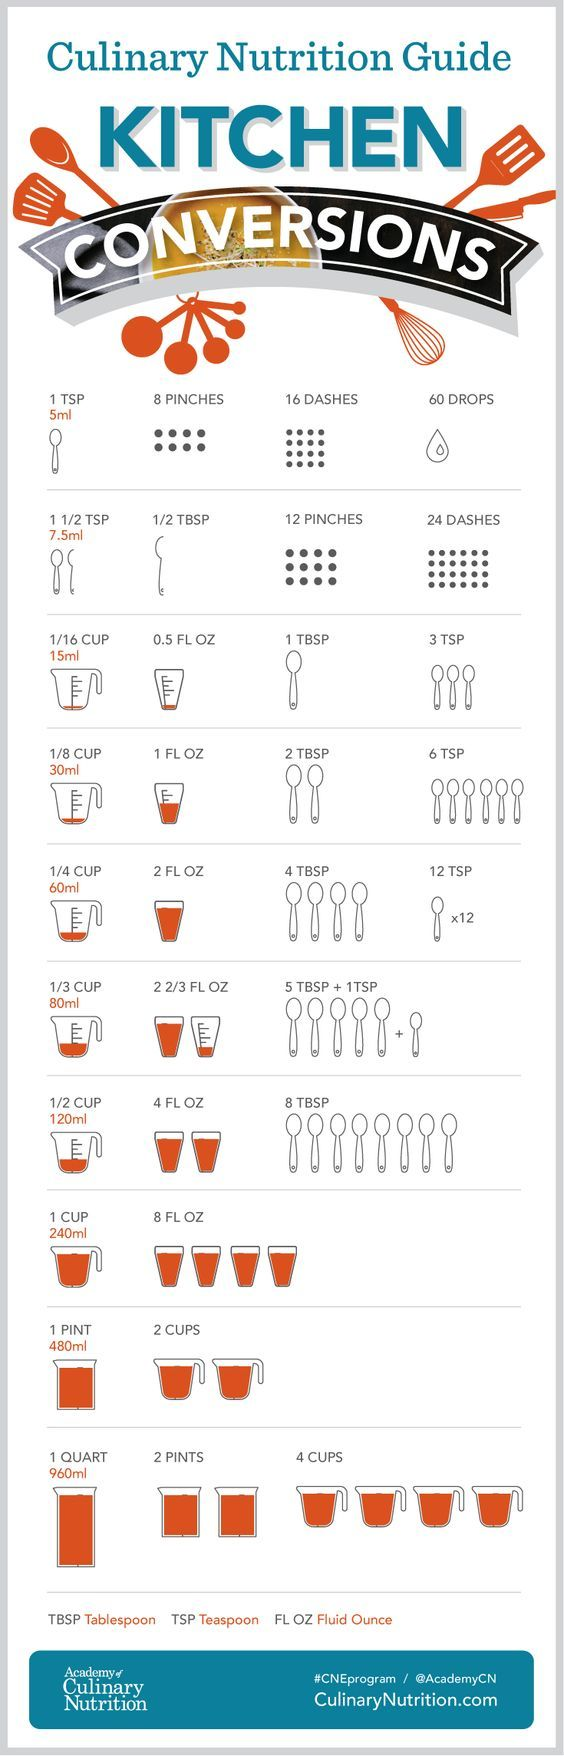 20 best conversion charts recipes images on pinterest cooking 20 best conversion charts recipes images on pinterest cooking tips food ideas and kitchen conversion chart nvjuhfo Image collections